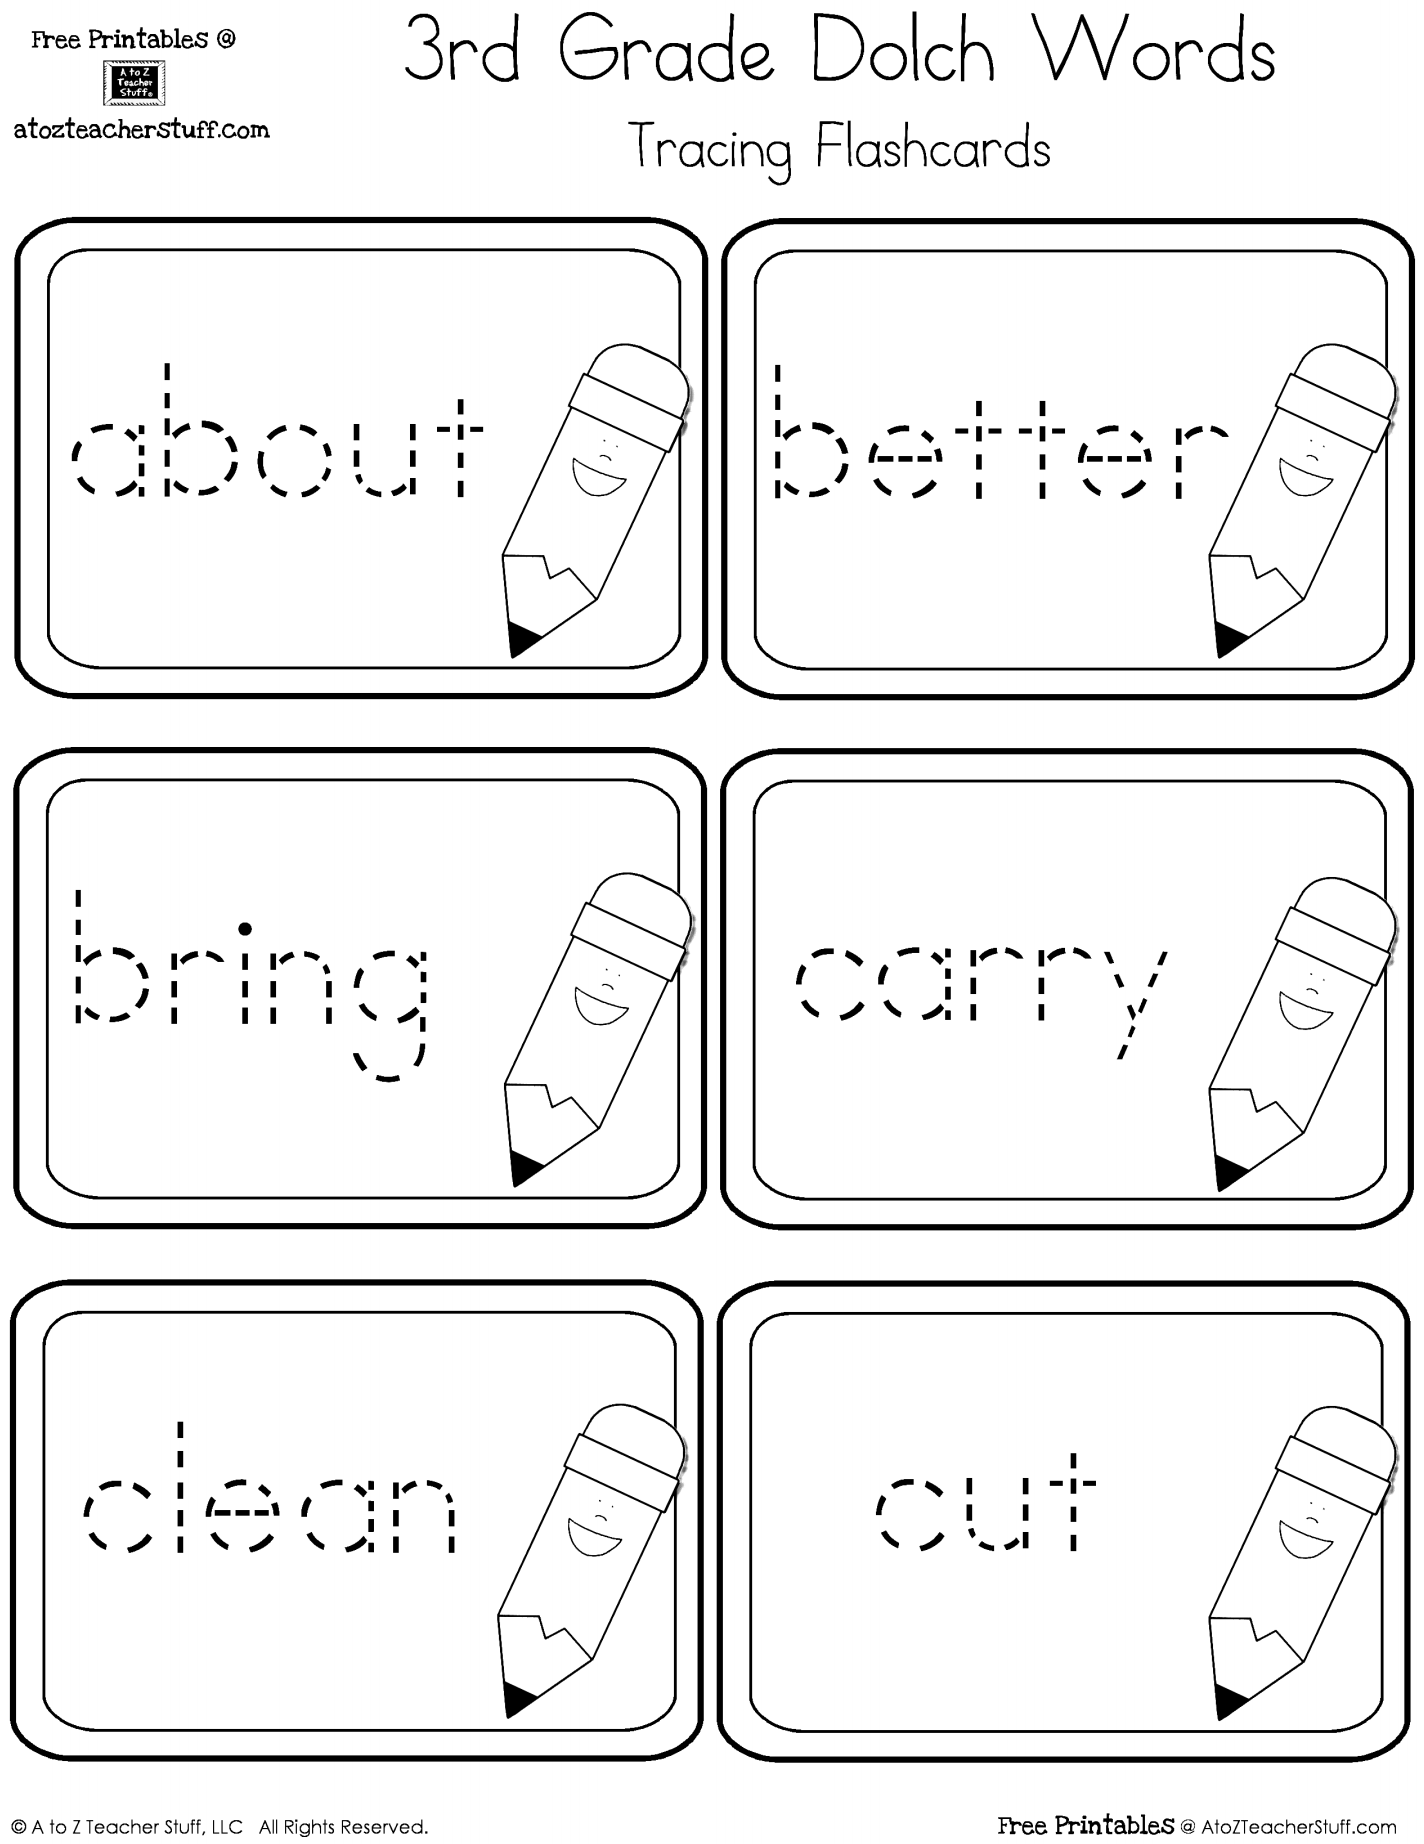 worksheet 1st Grade Sight Words Worksheets third grade dolch sight words tracing flashcards a to z teacher 3rd cards free printables